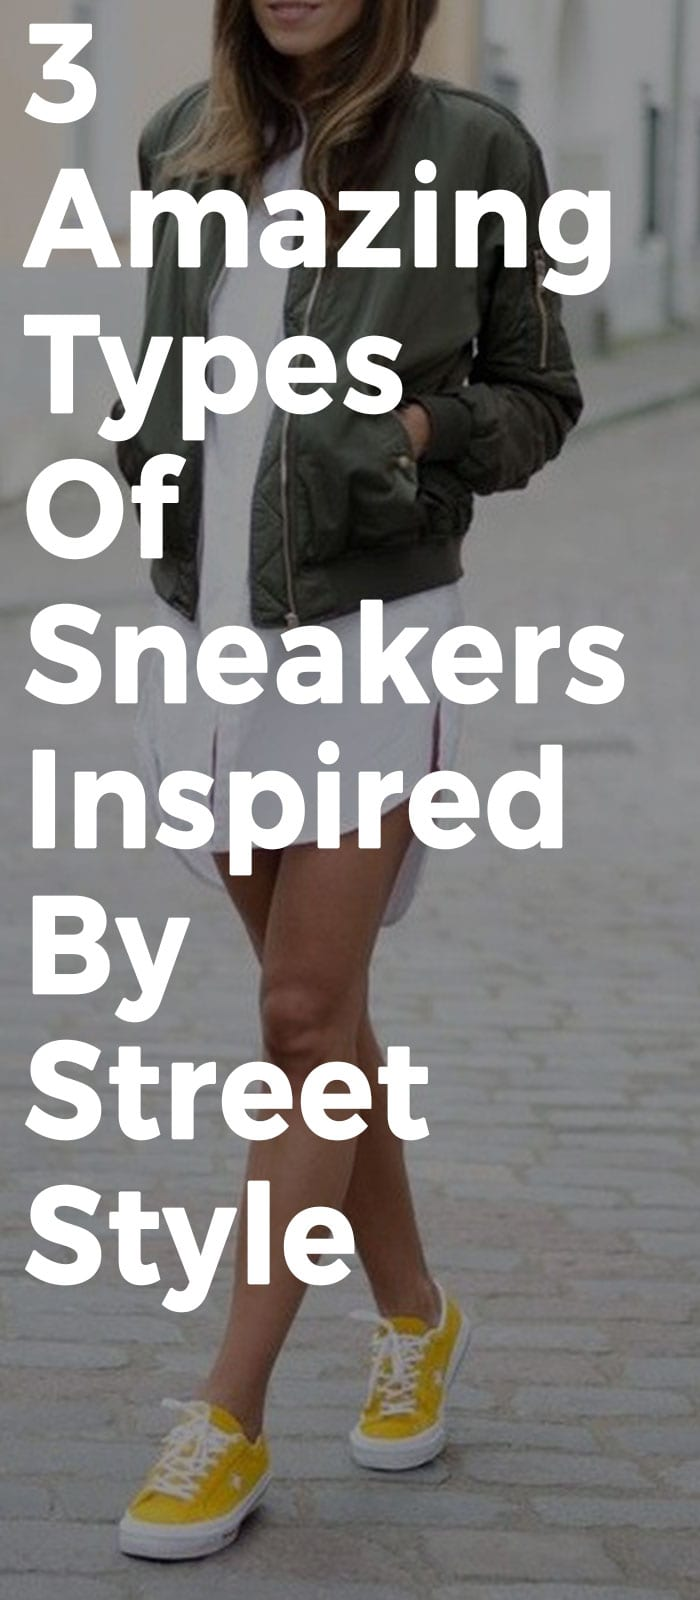 3 Amazing Types Of Sneakers Inspired By Street Style